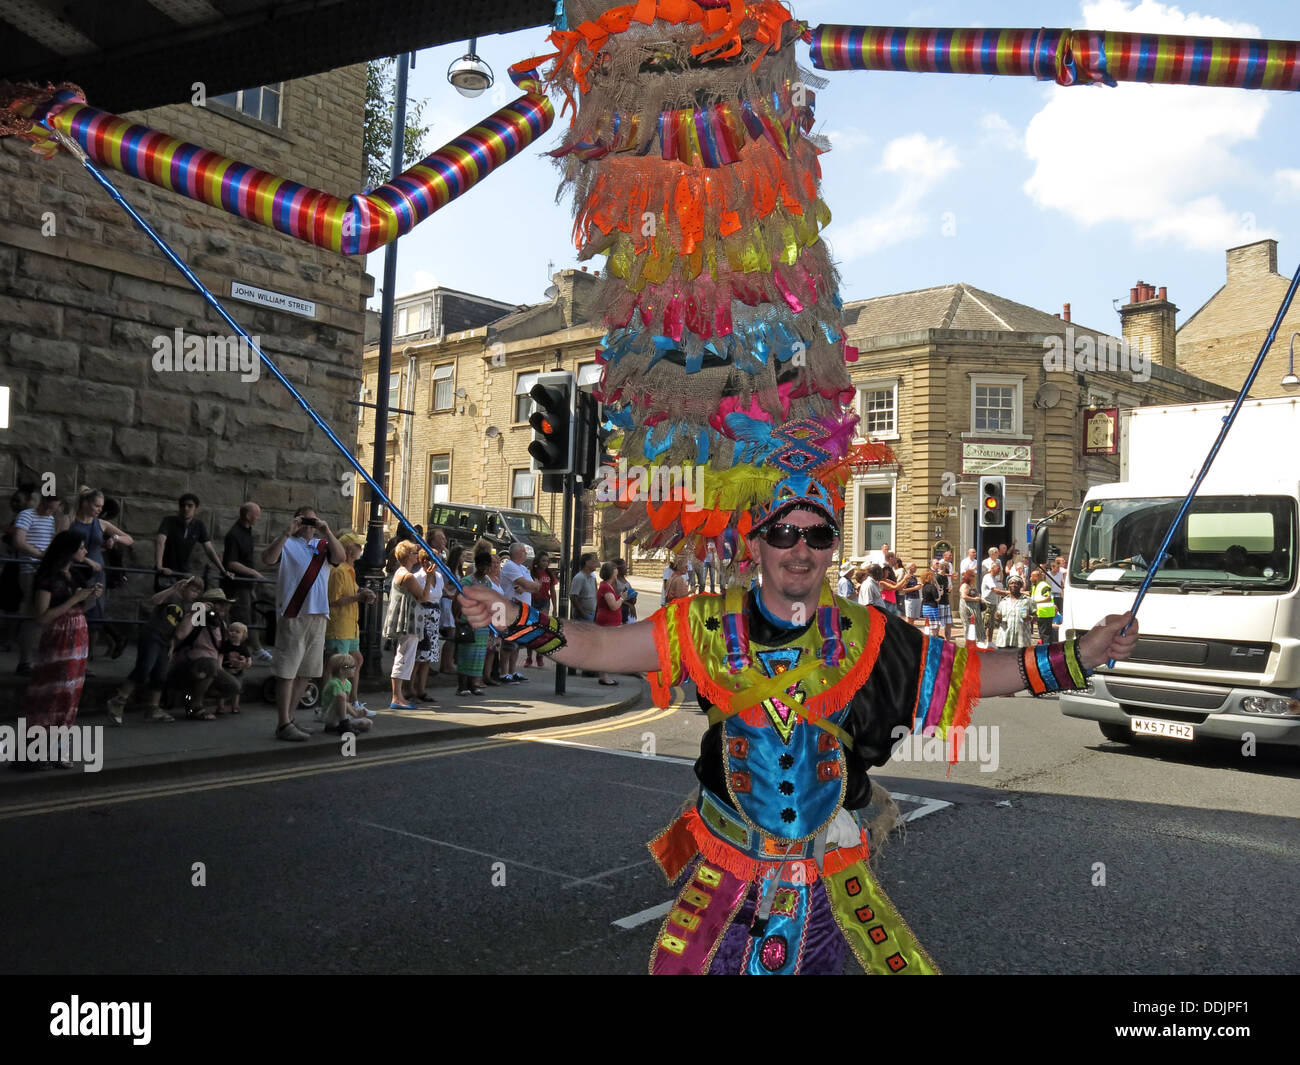 Costumed dancer under railway bridge from Huddersfield Carnival 2013 African Caribbean parade street party - Stock Image